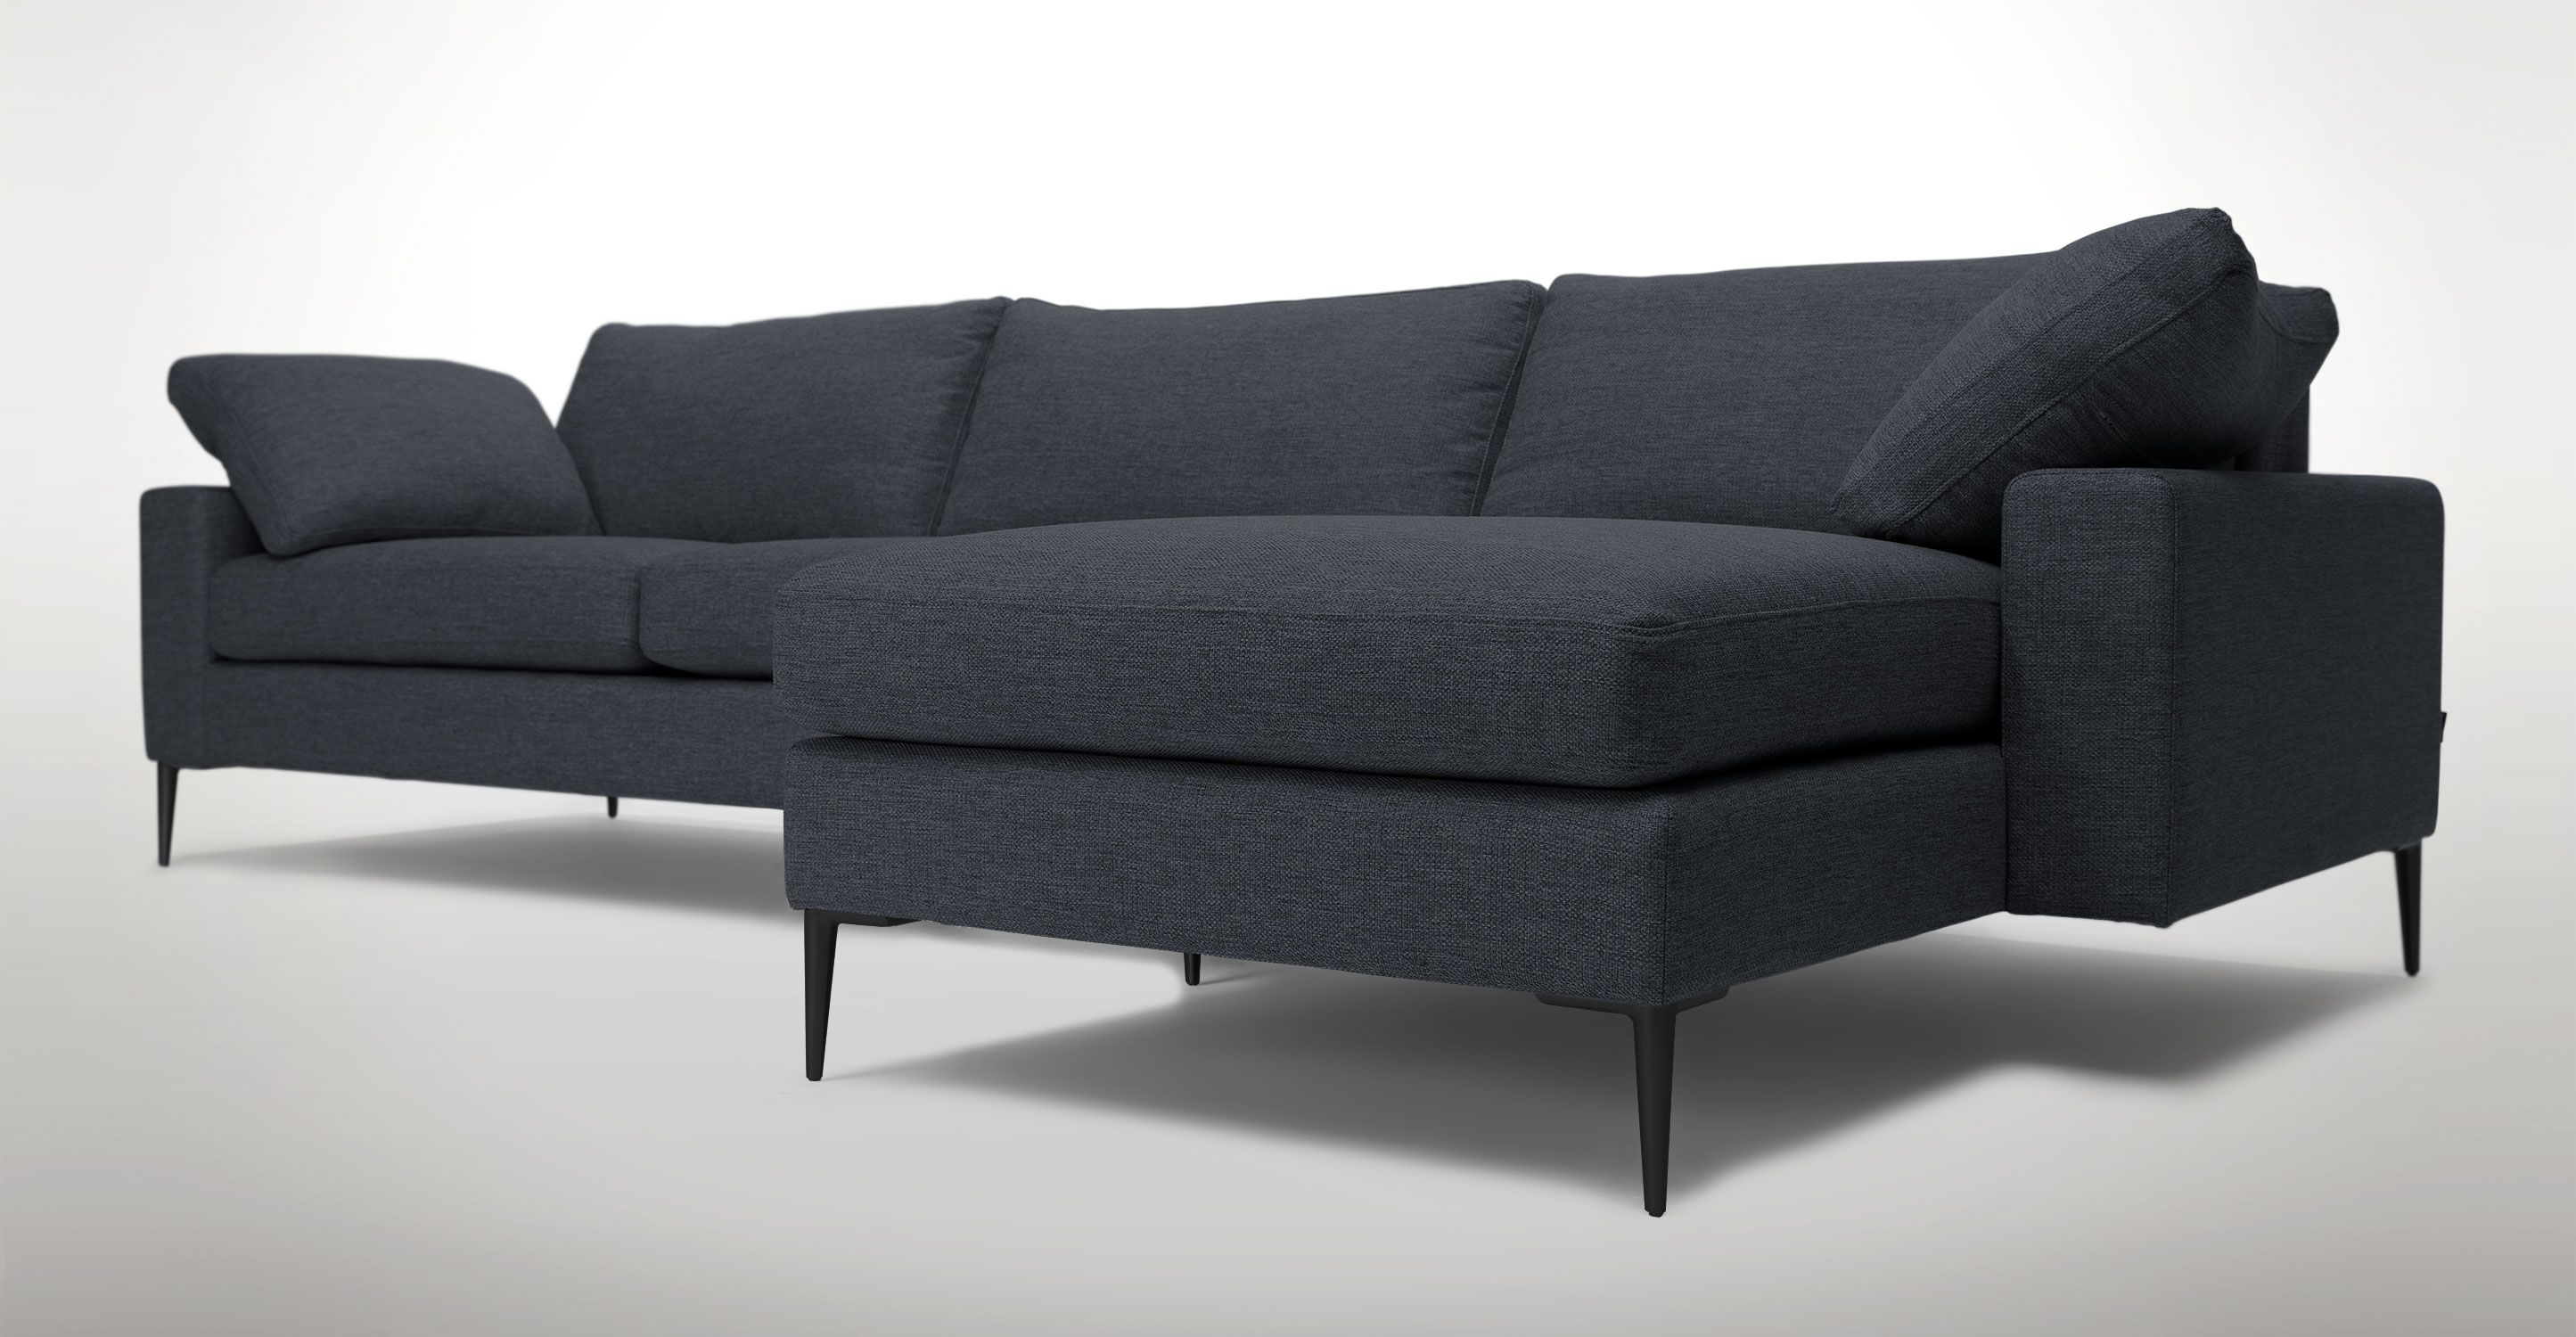 Lola 2 Piece Sectional Sofa from EQ3 A friend of mine has this